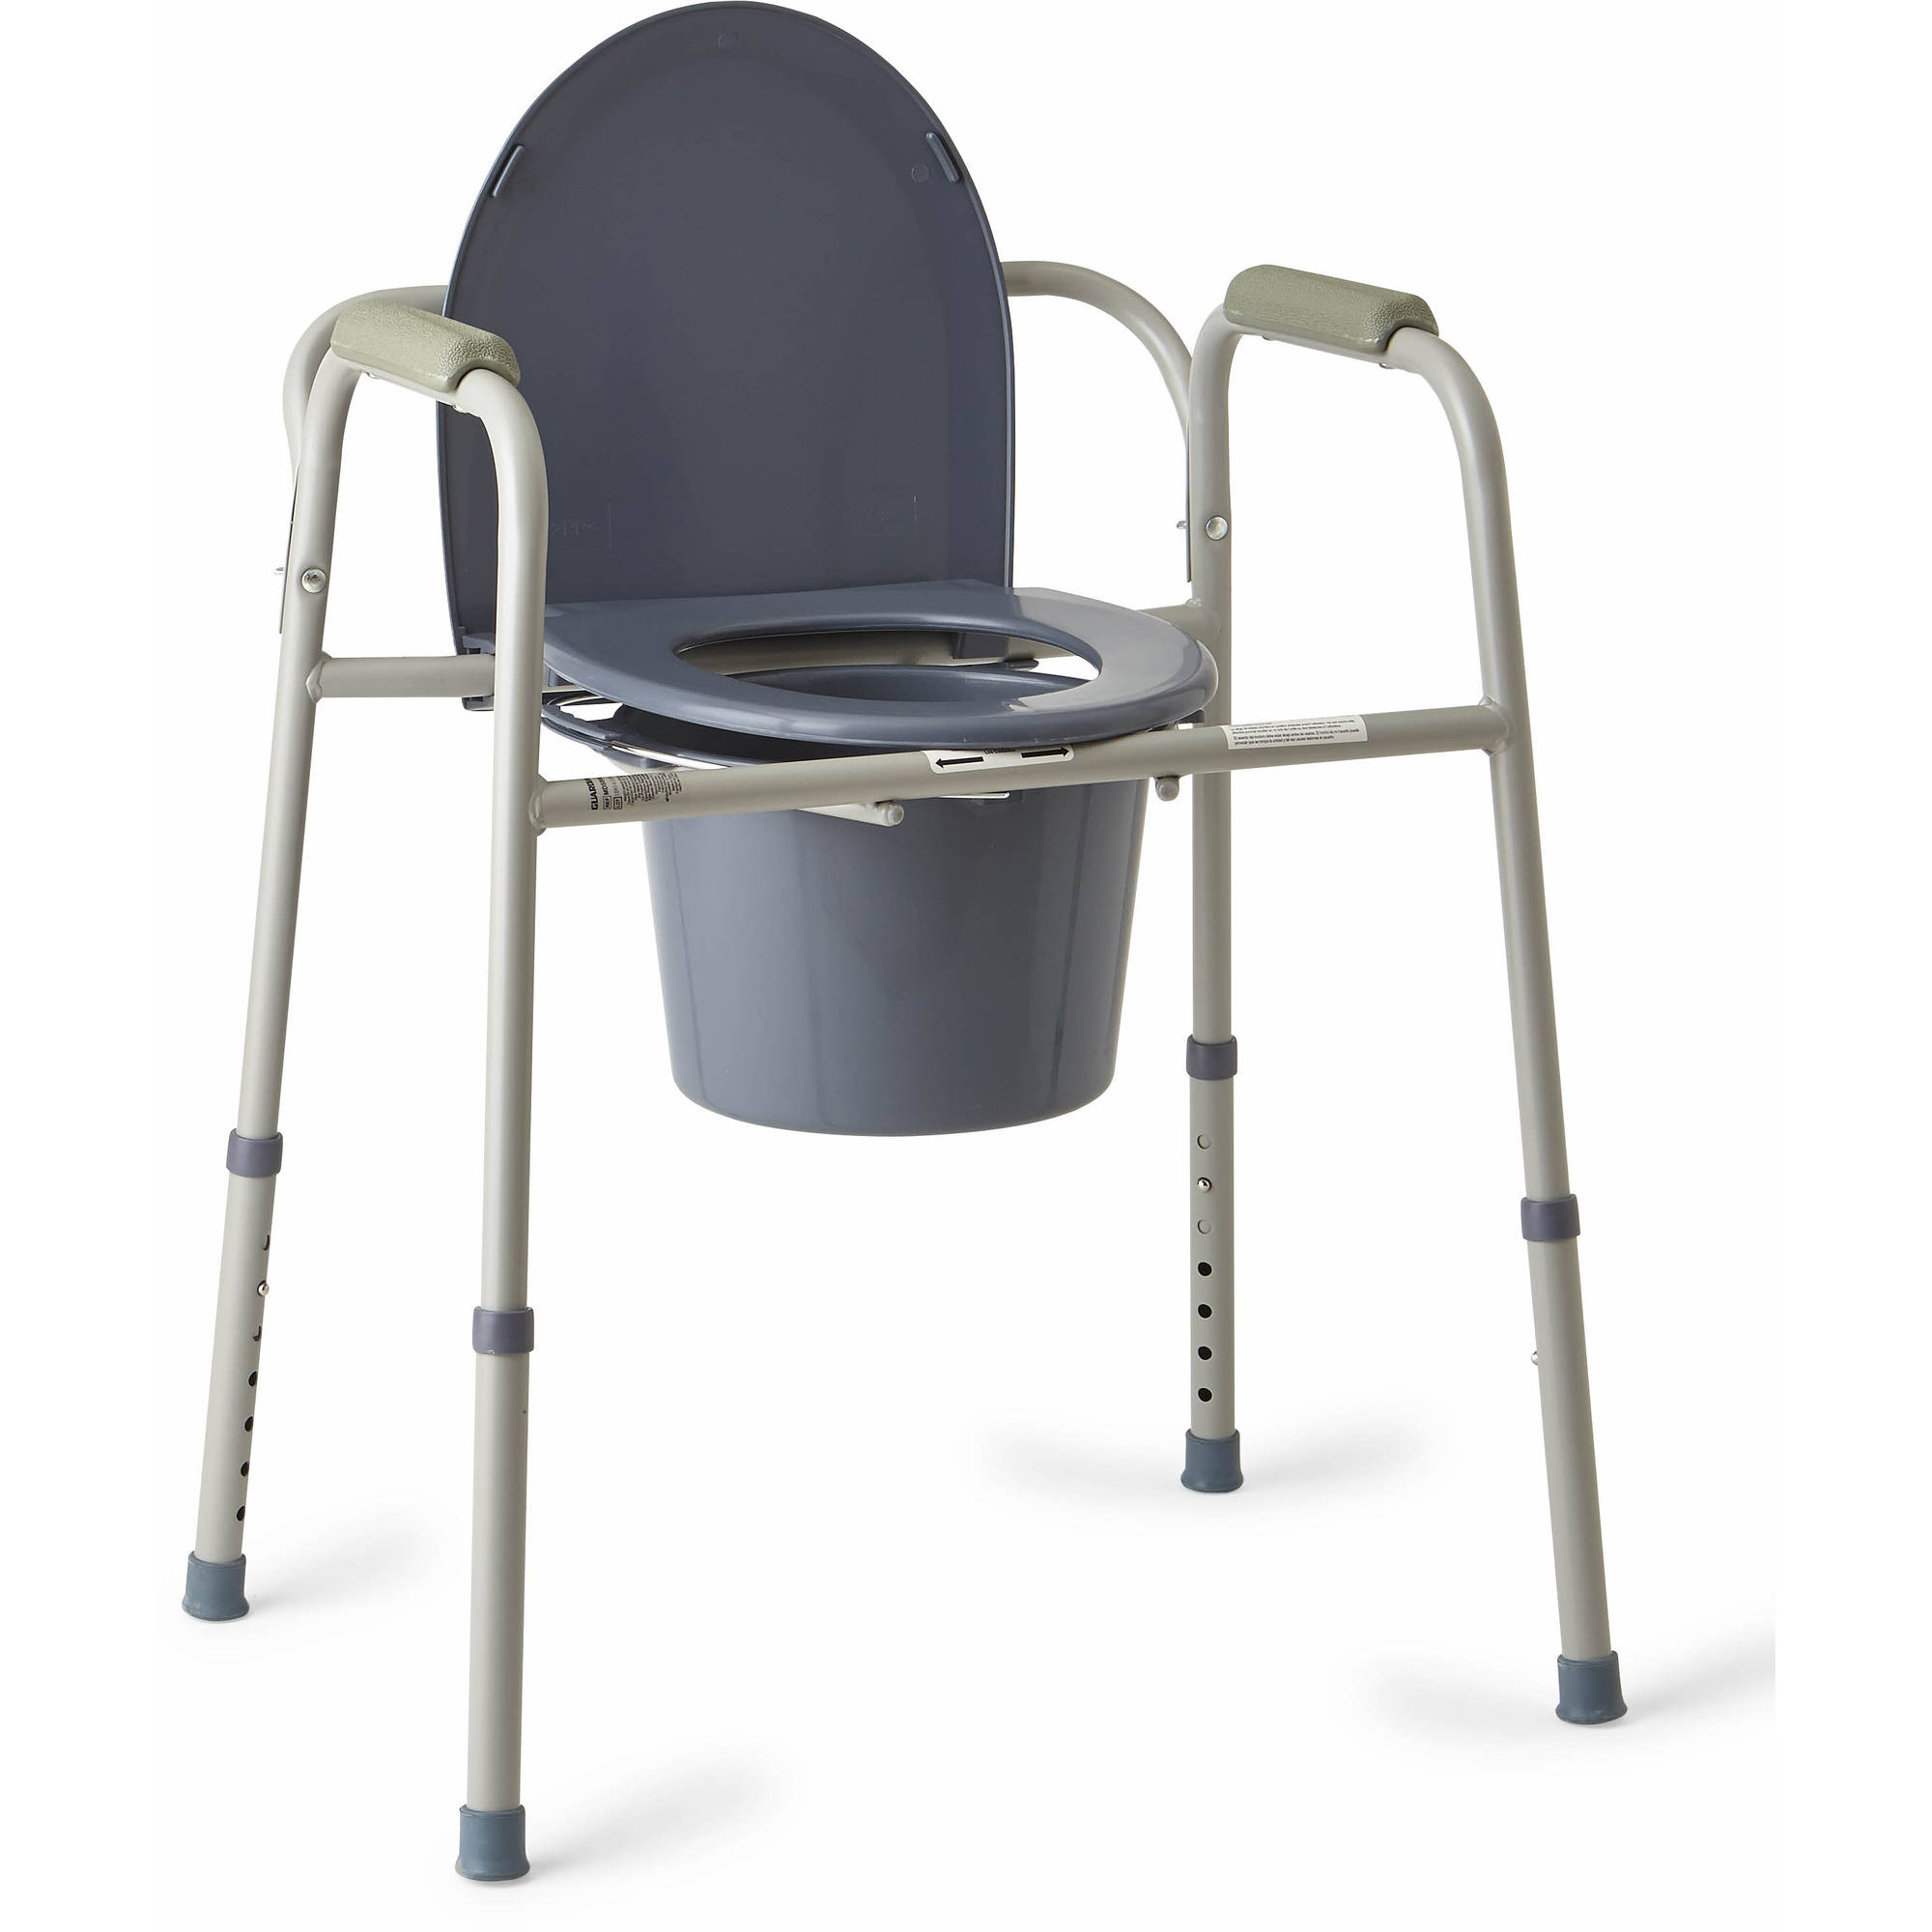 Medline Steel 3-in-1 Bedside Toilet Commode - Walmart.com